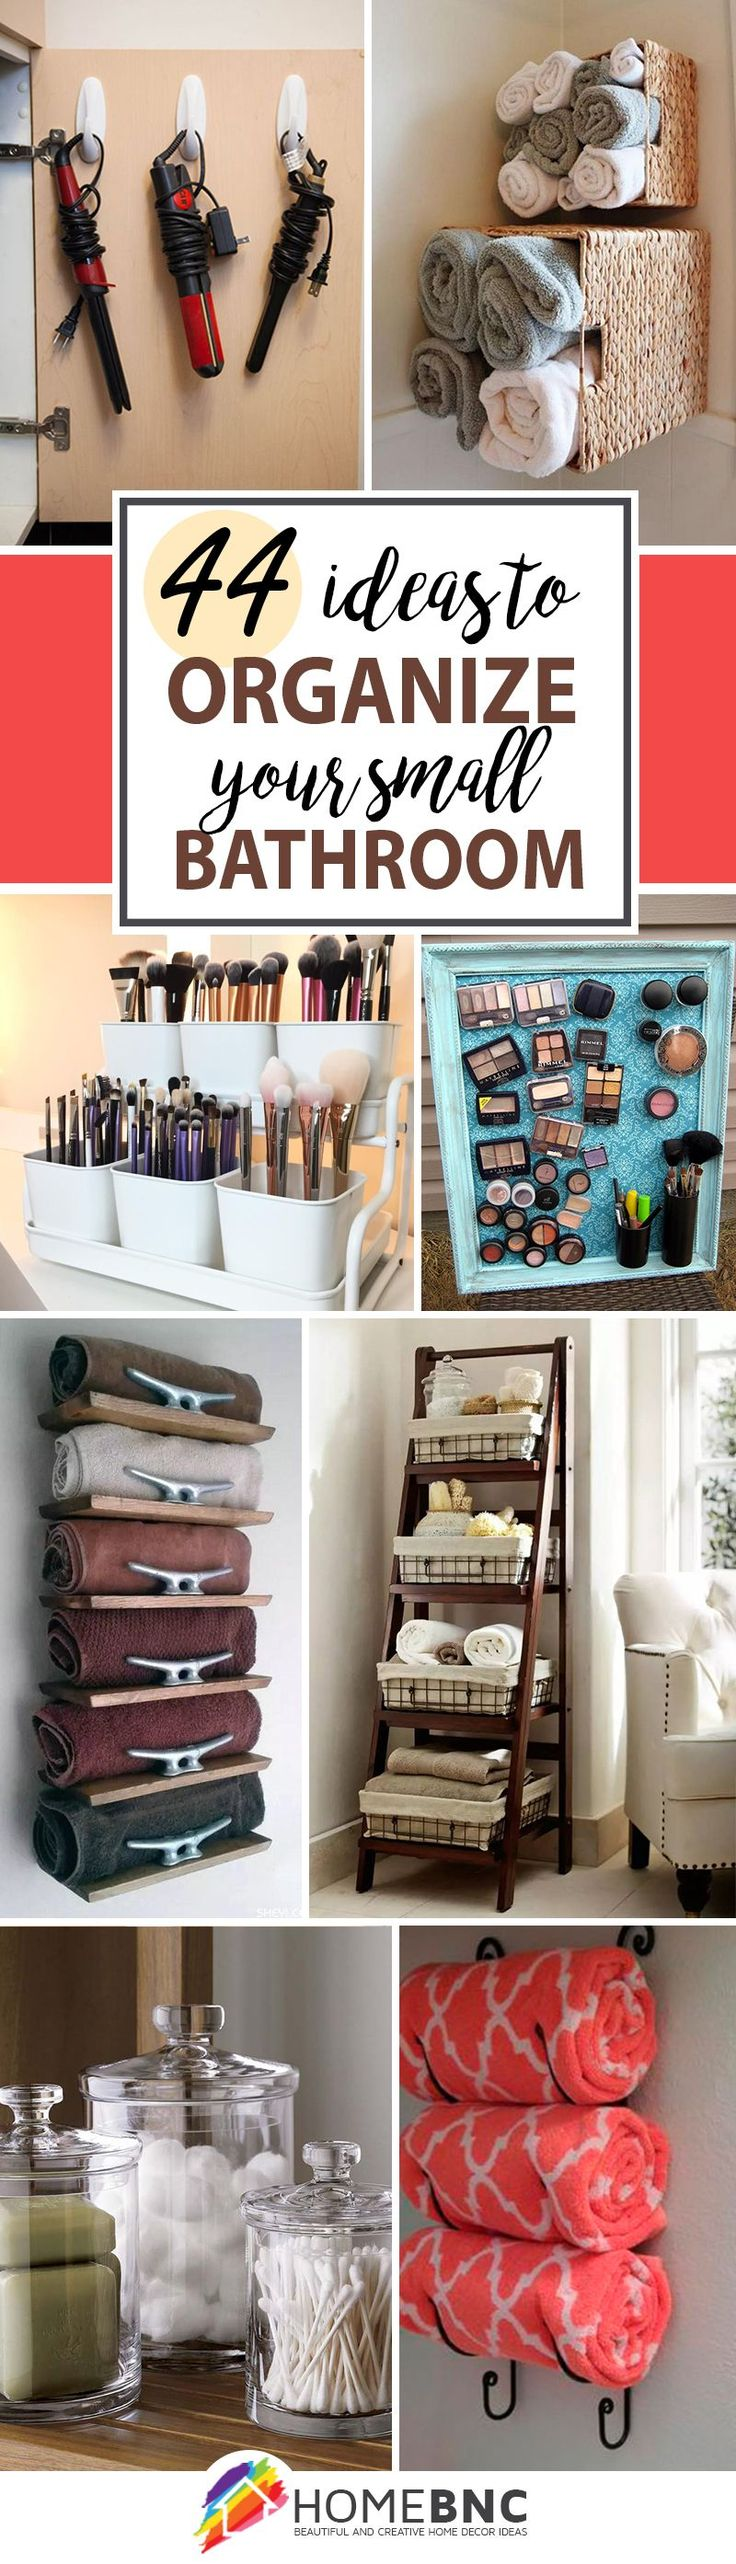 44 Unique Storage Ideas for a Small Bathroom to Make Yours BiggerBest 25  Small bedroom organization ideas on Pinterest   Small  . Diy Organizing Ideas For Bedrooms. Home Design Ideas